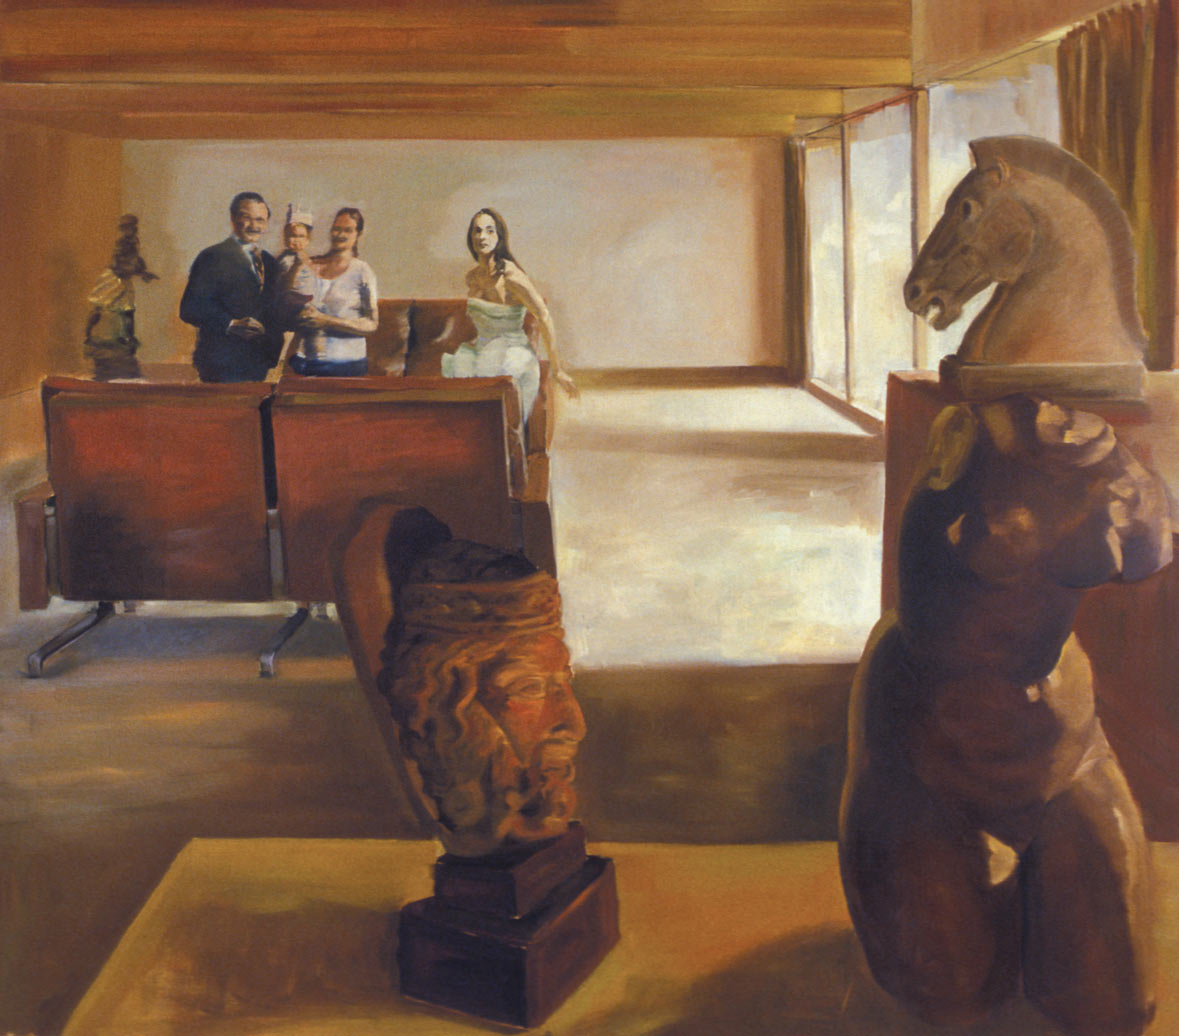 Chester's Gambit, 1991. Oil on linen. 86 x 98 in. (218 x 249 cm.)